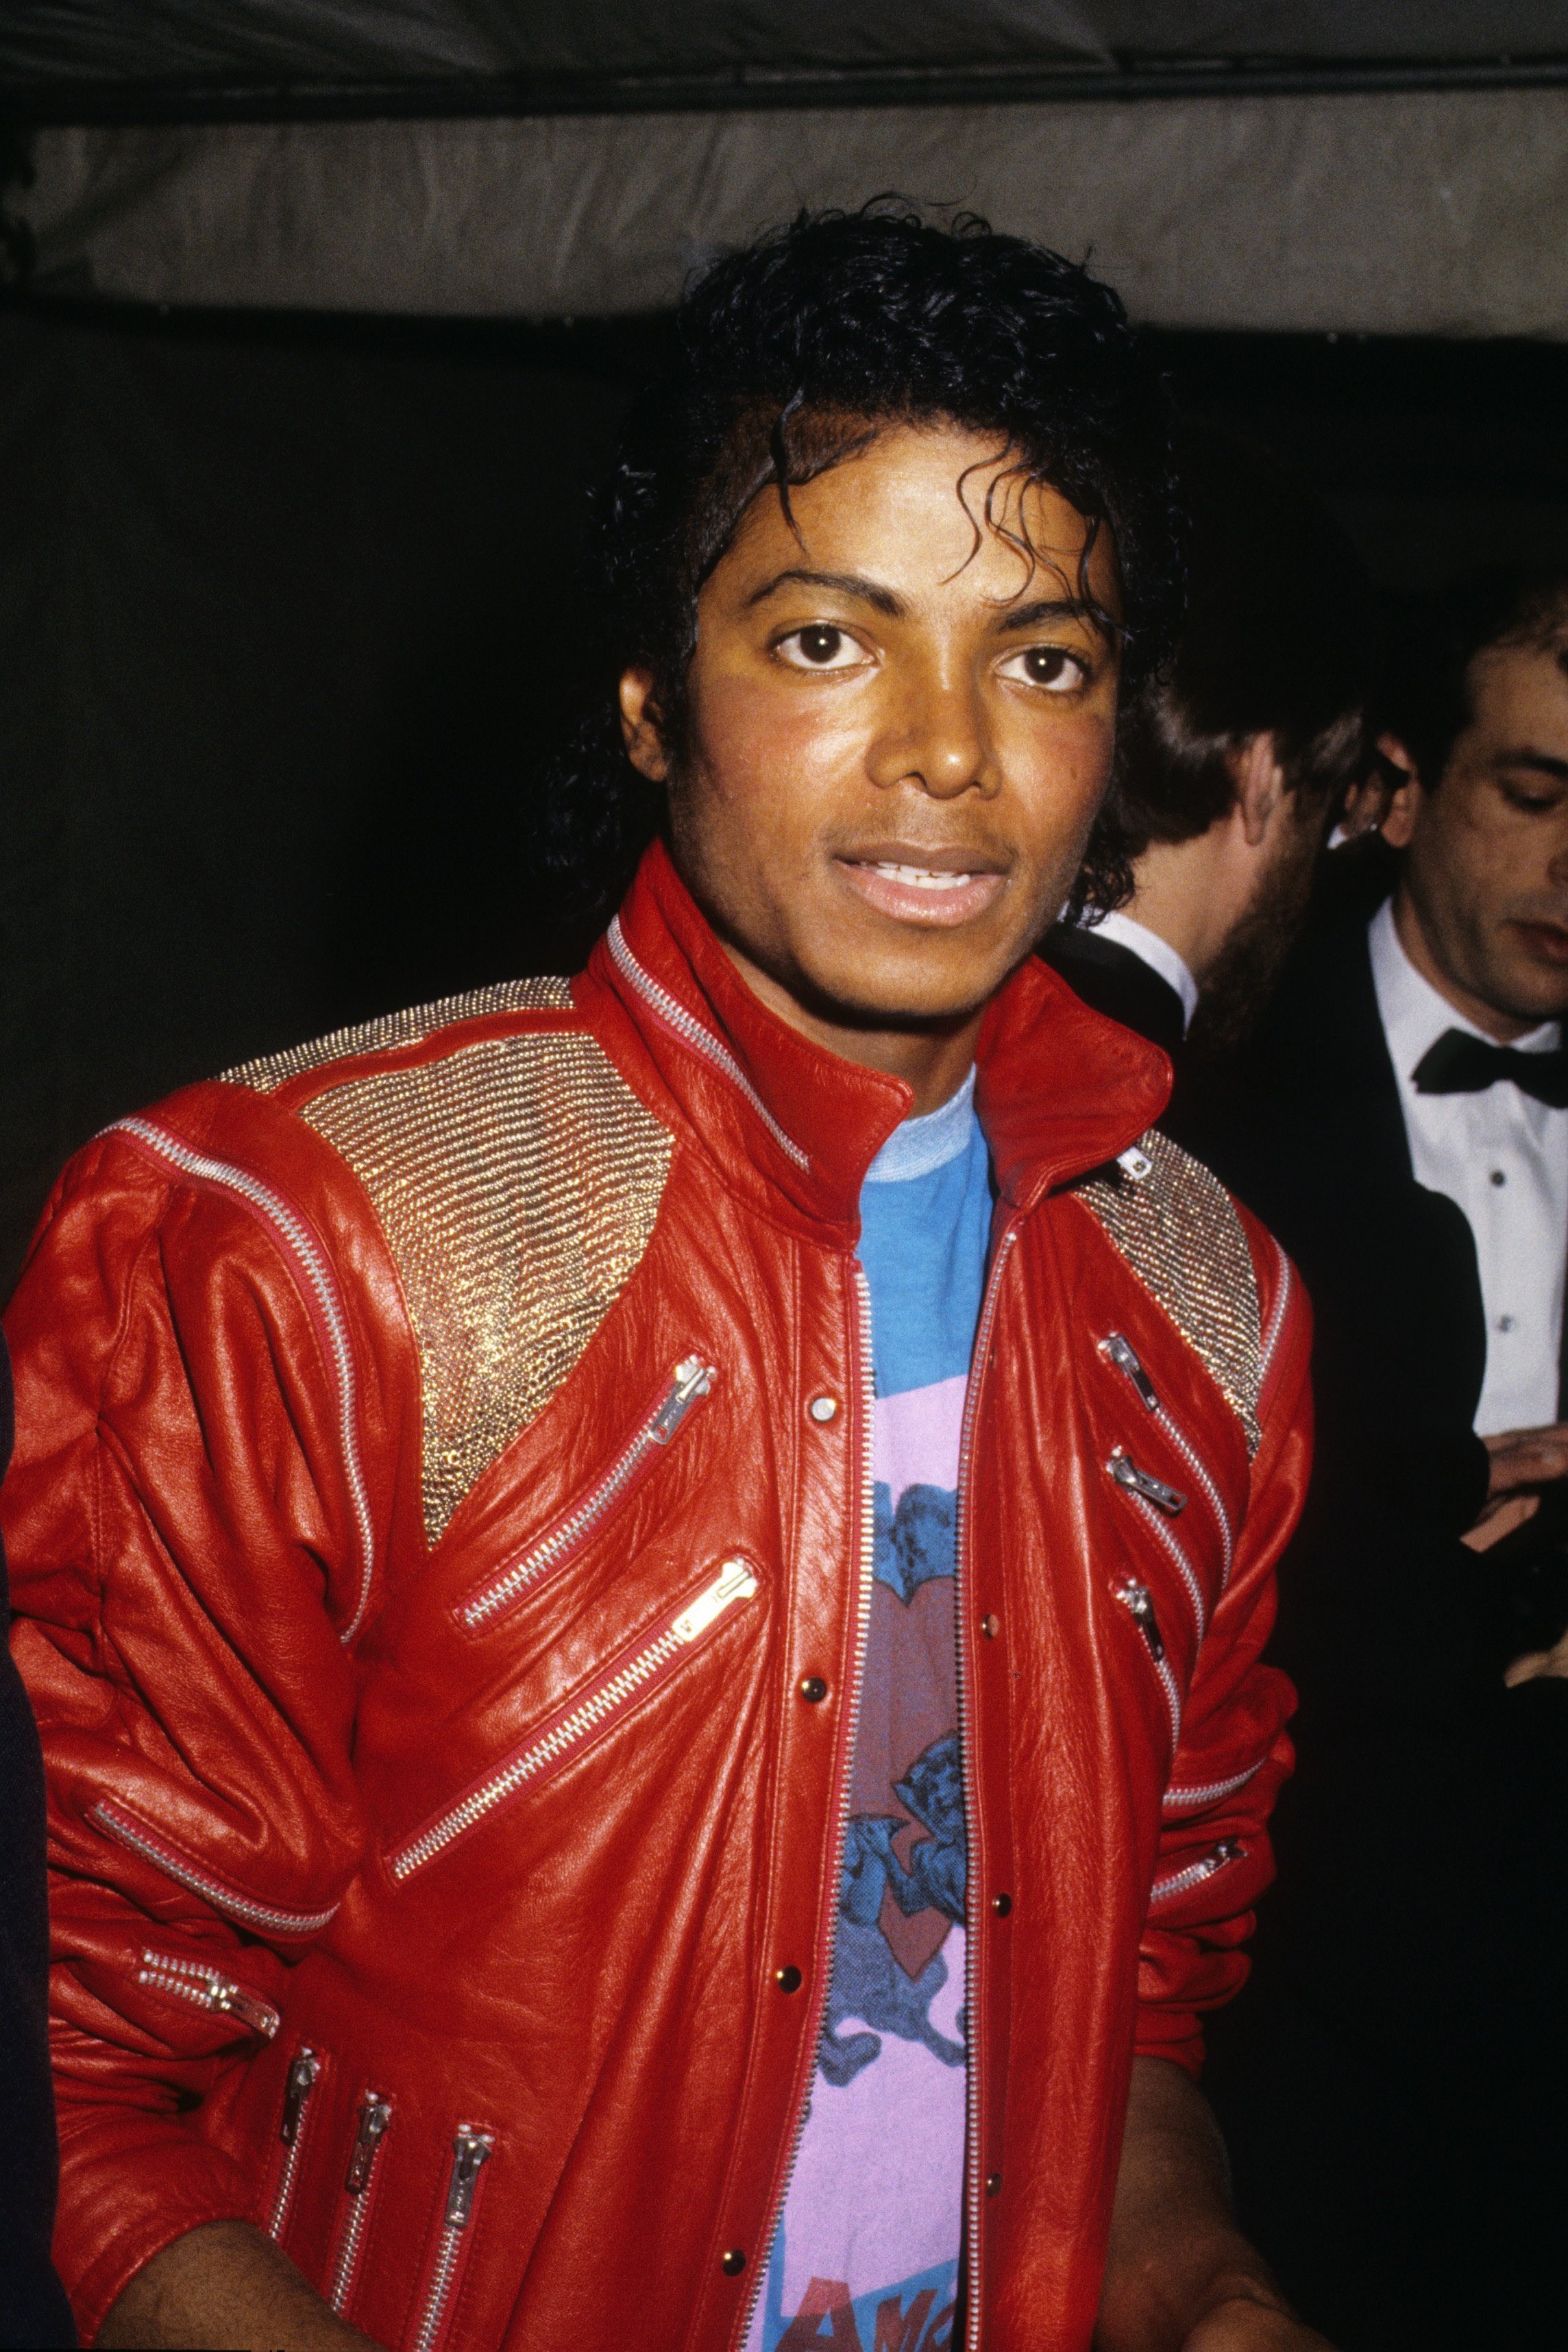 Michael Jackson in his younger days | Photo: Getty Images